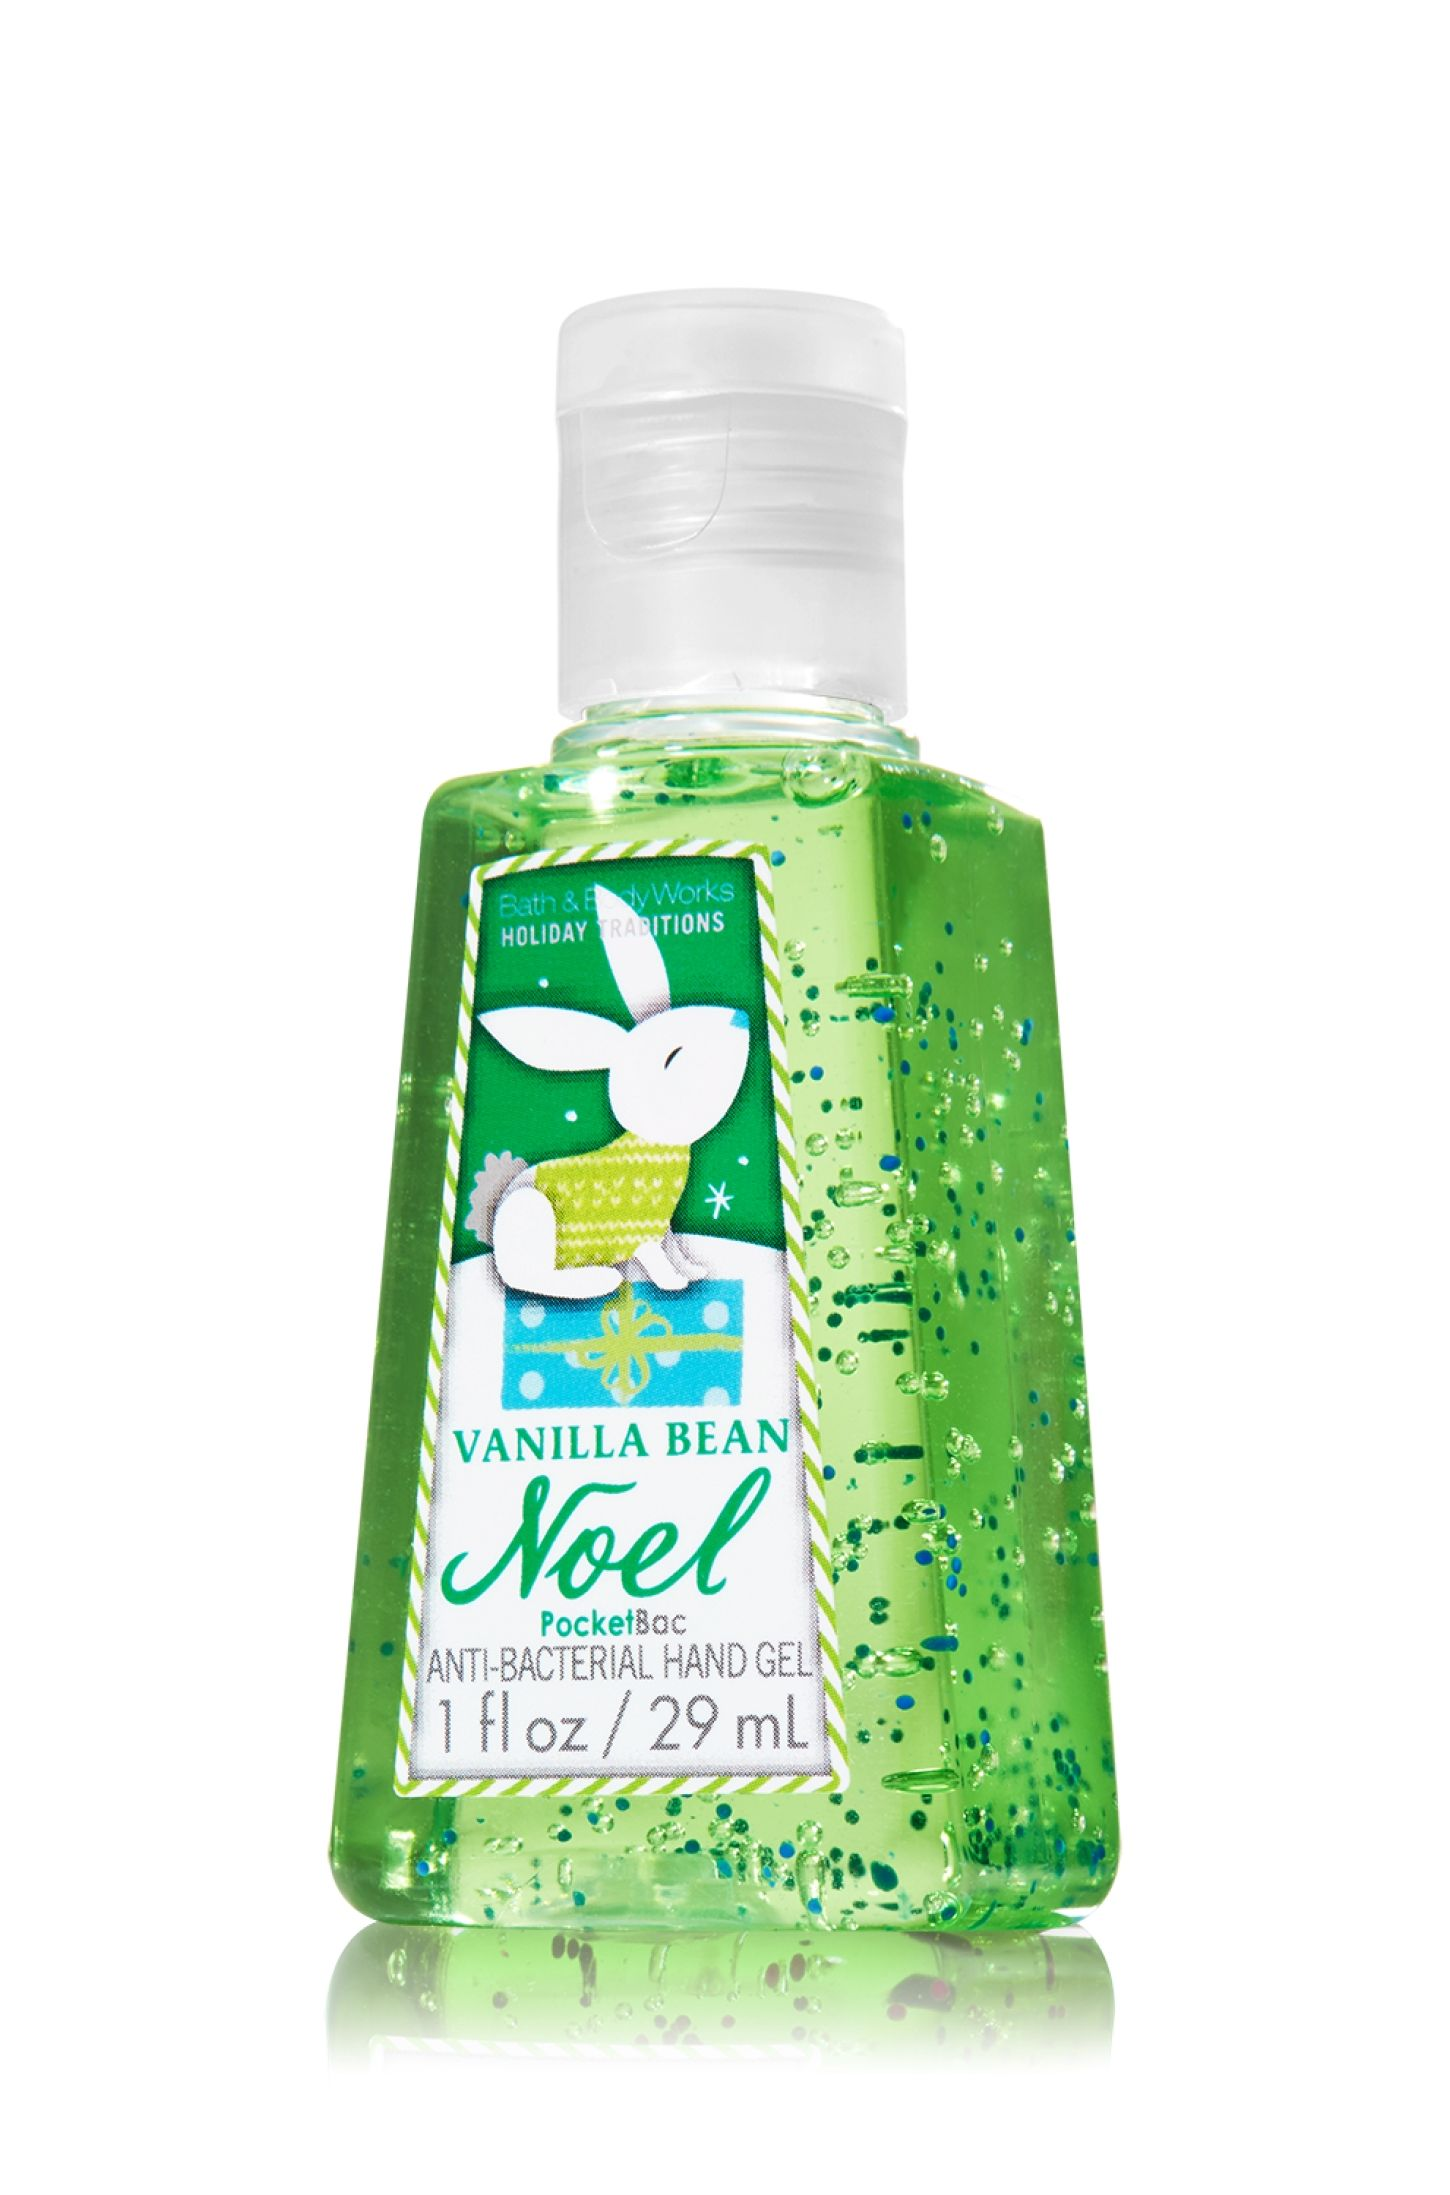 Vanilla Bean Noel Pocketbac Sanitizing Hand Gel Anti Bacterial